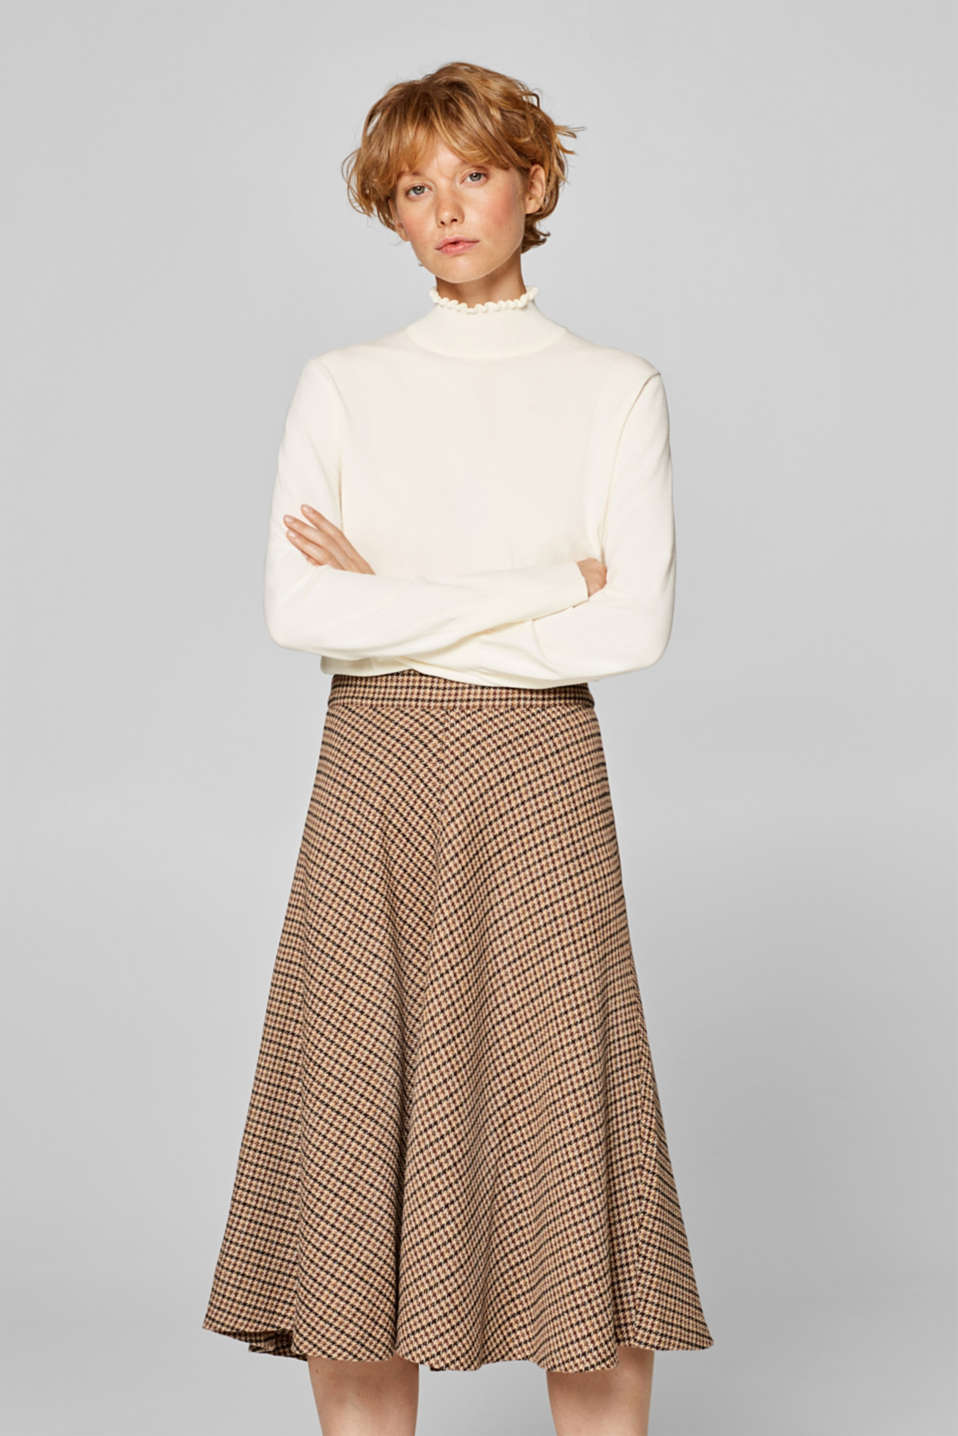 Esprit - With wool: midi skirt with a checked pattern